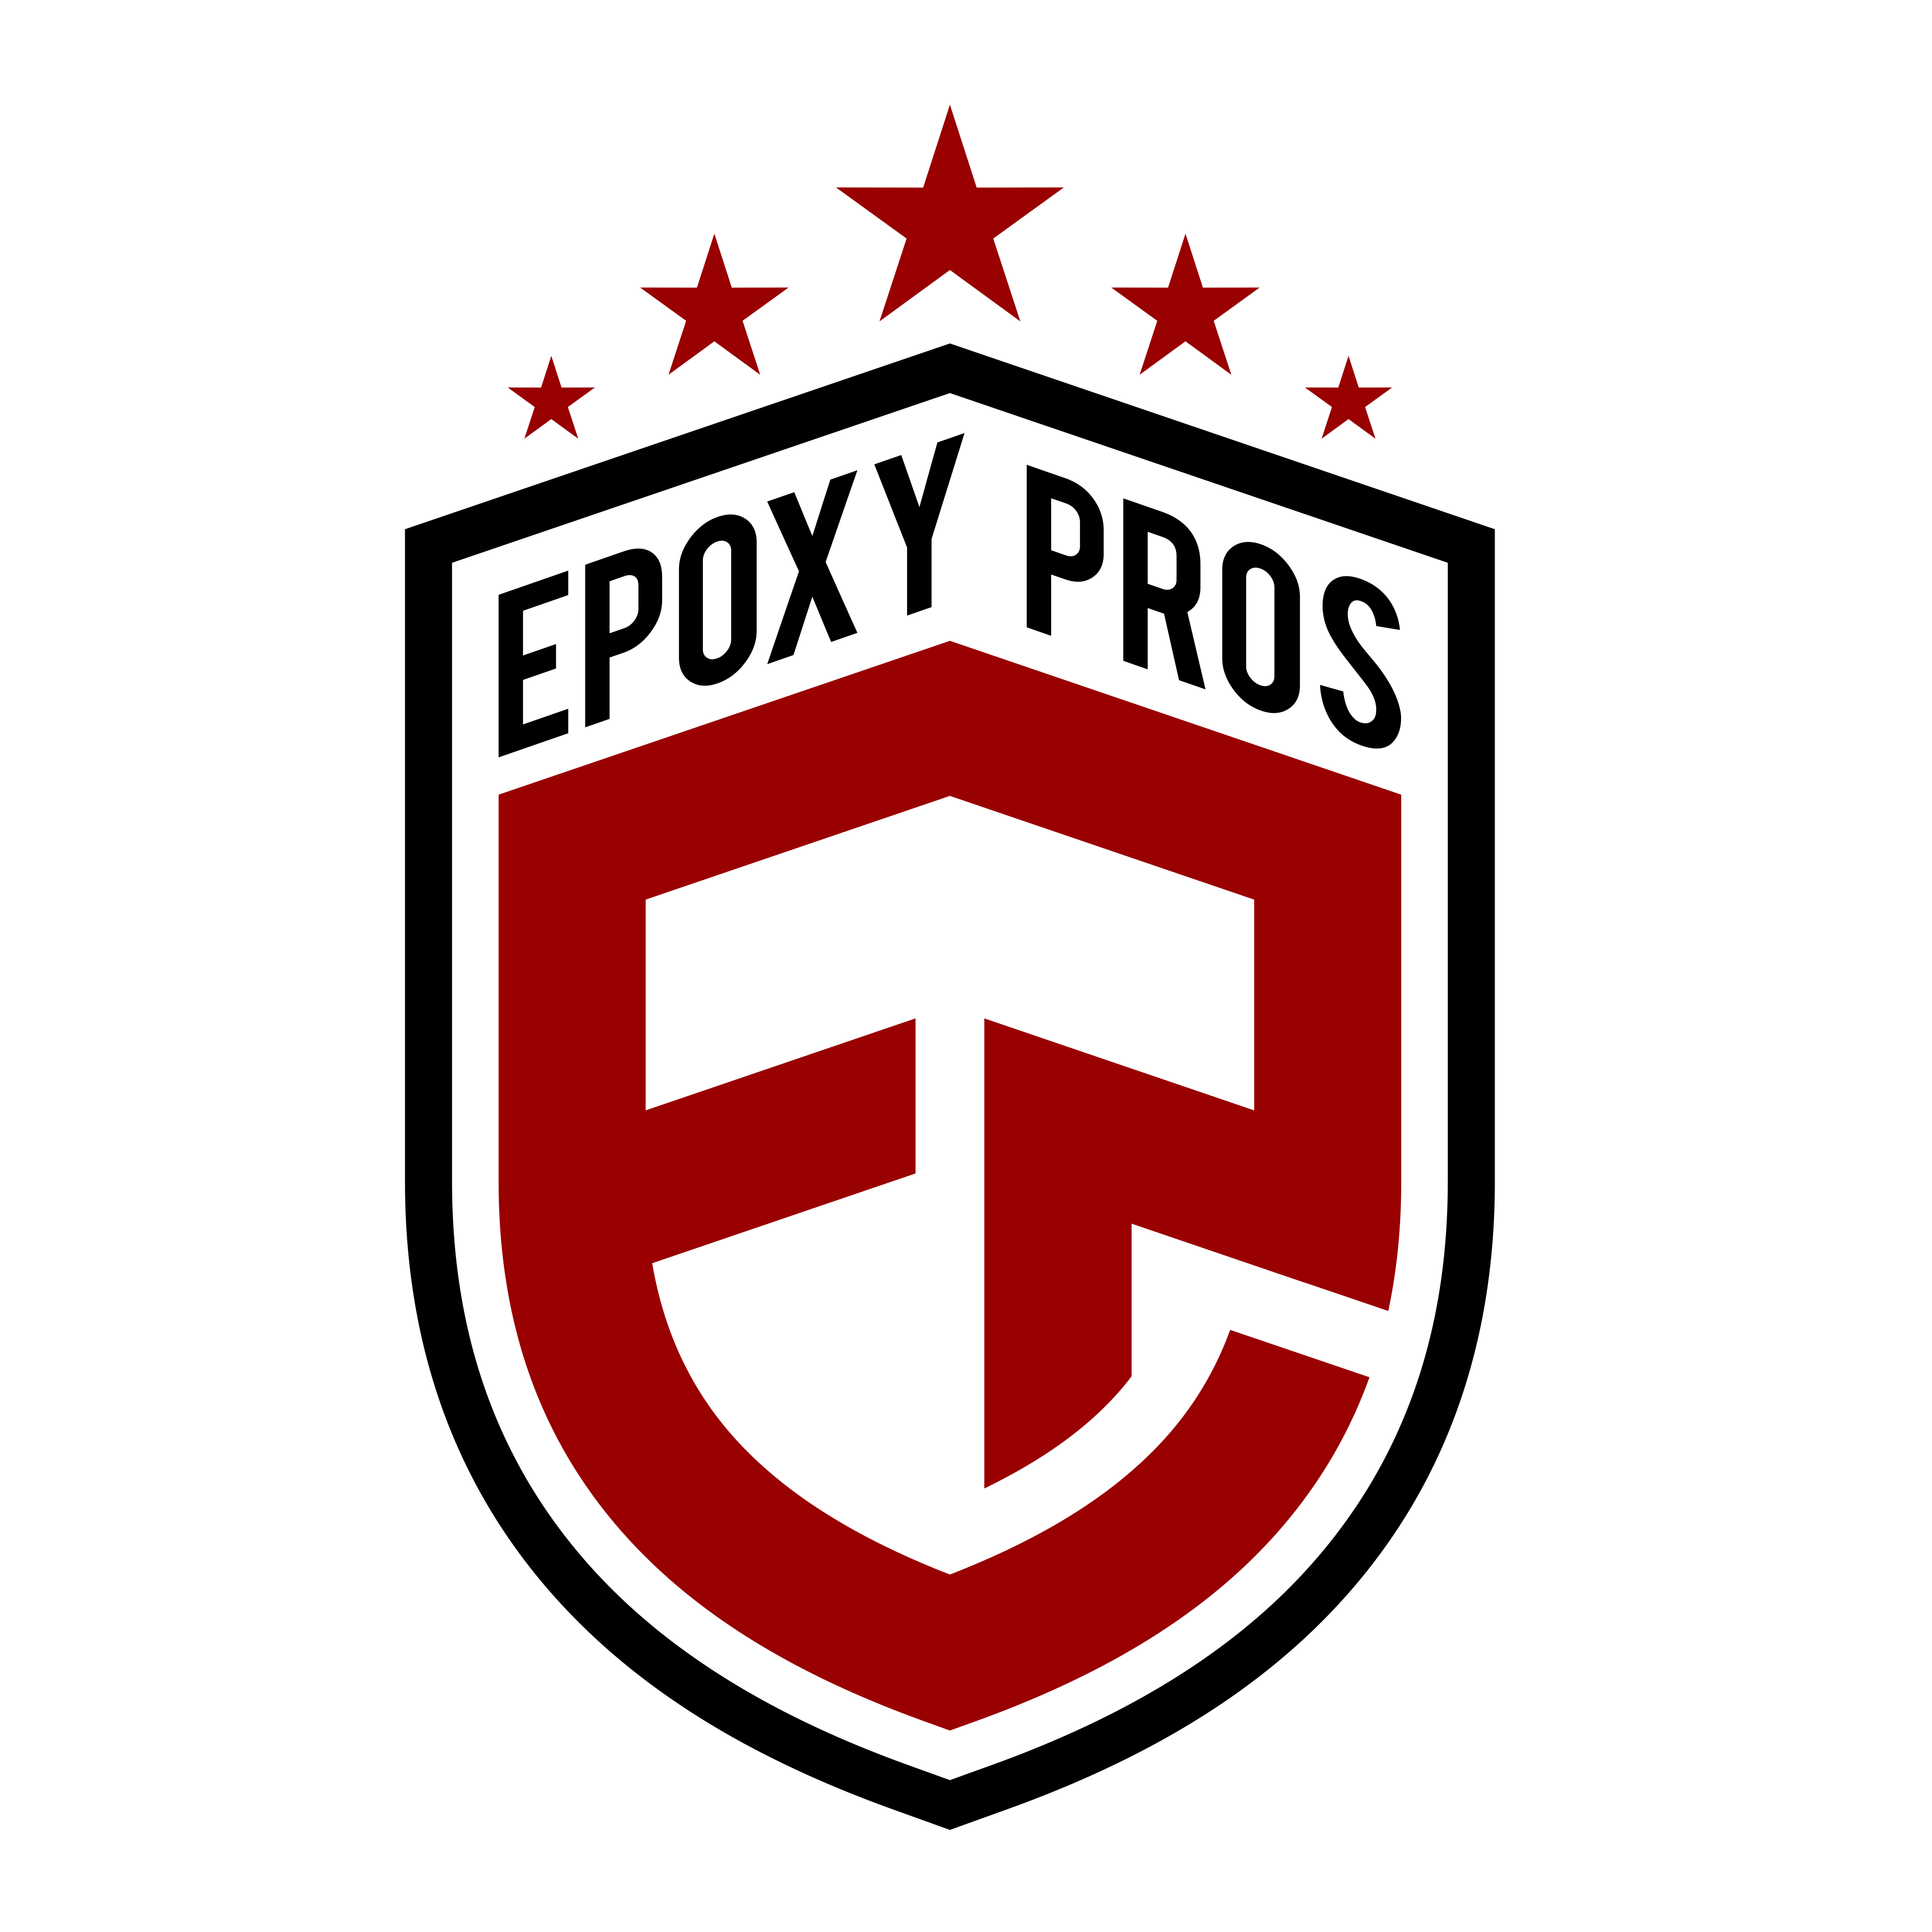 Epoxy Pros DFW